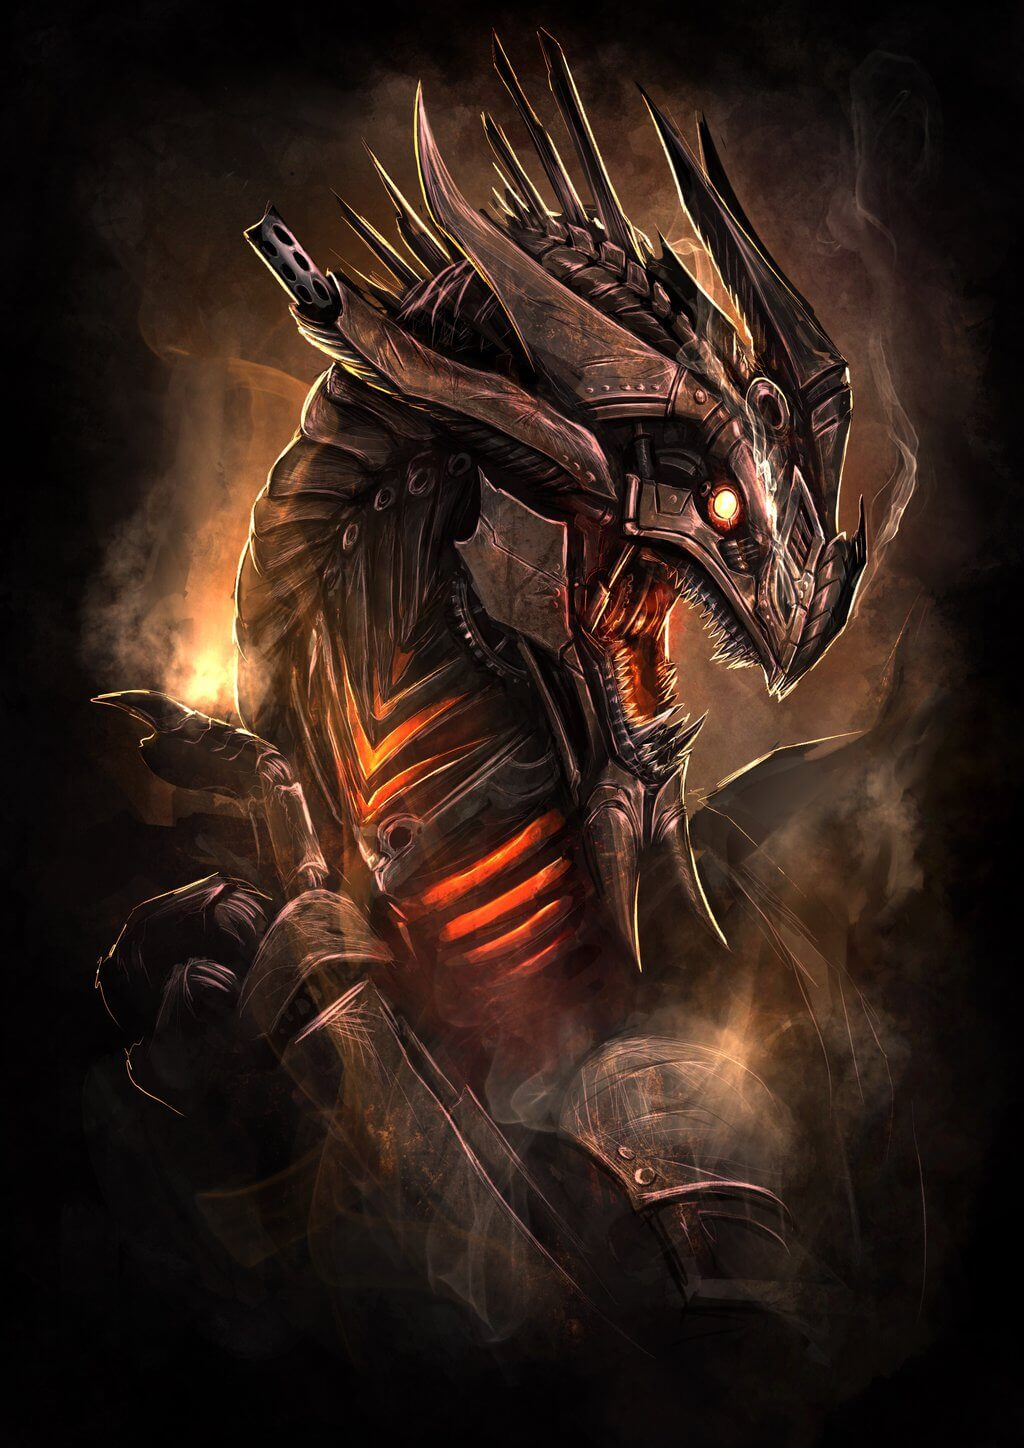 Steampunk Dragon by Tapwing